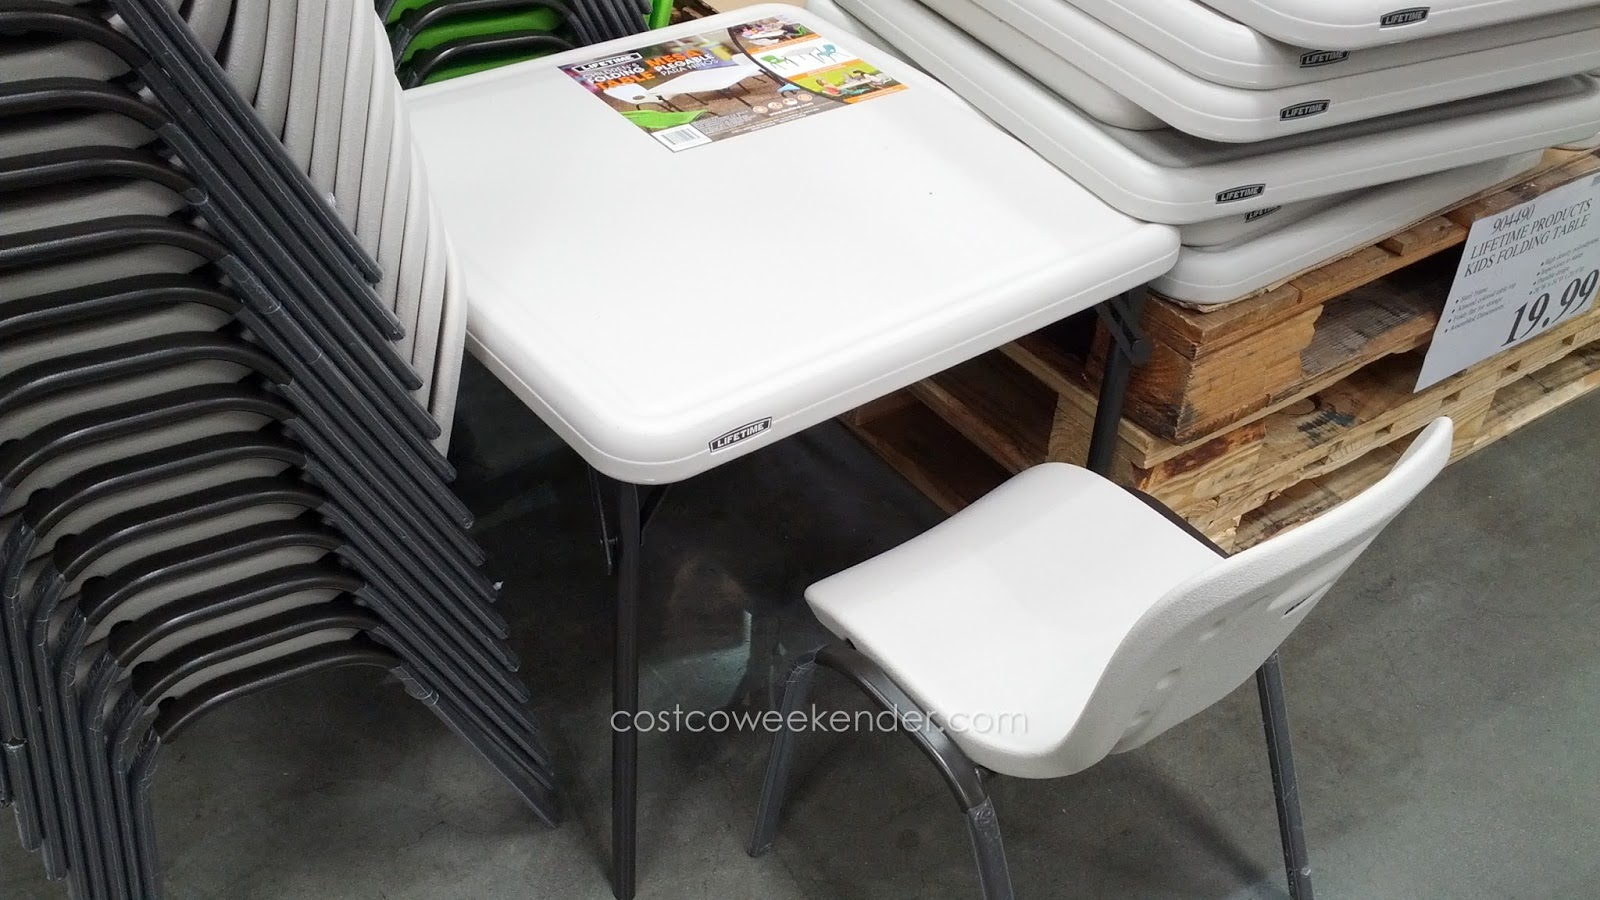 Costco Tables And Chairs Lifetime Children 39s Folding Table Costco Weekender